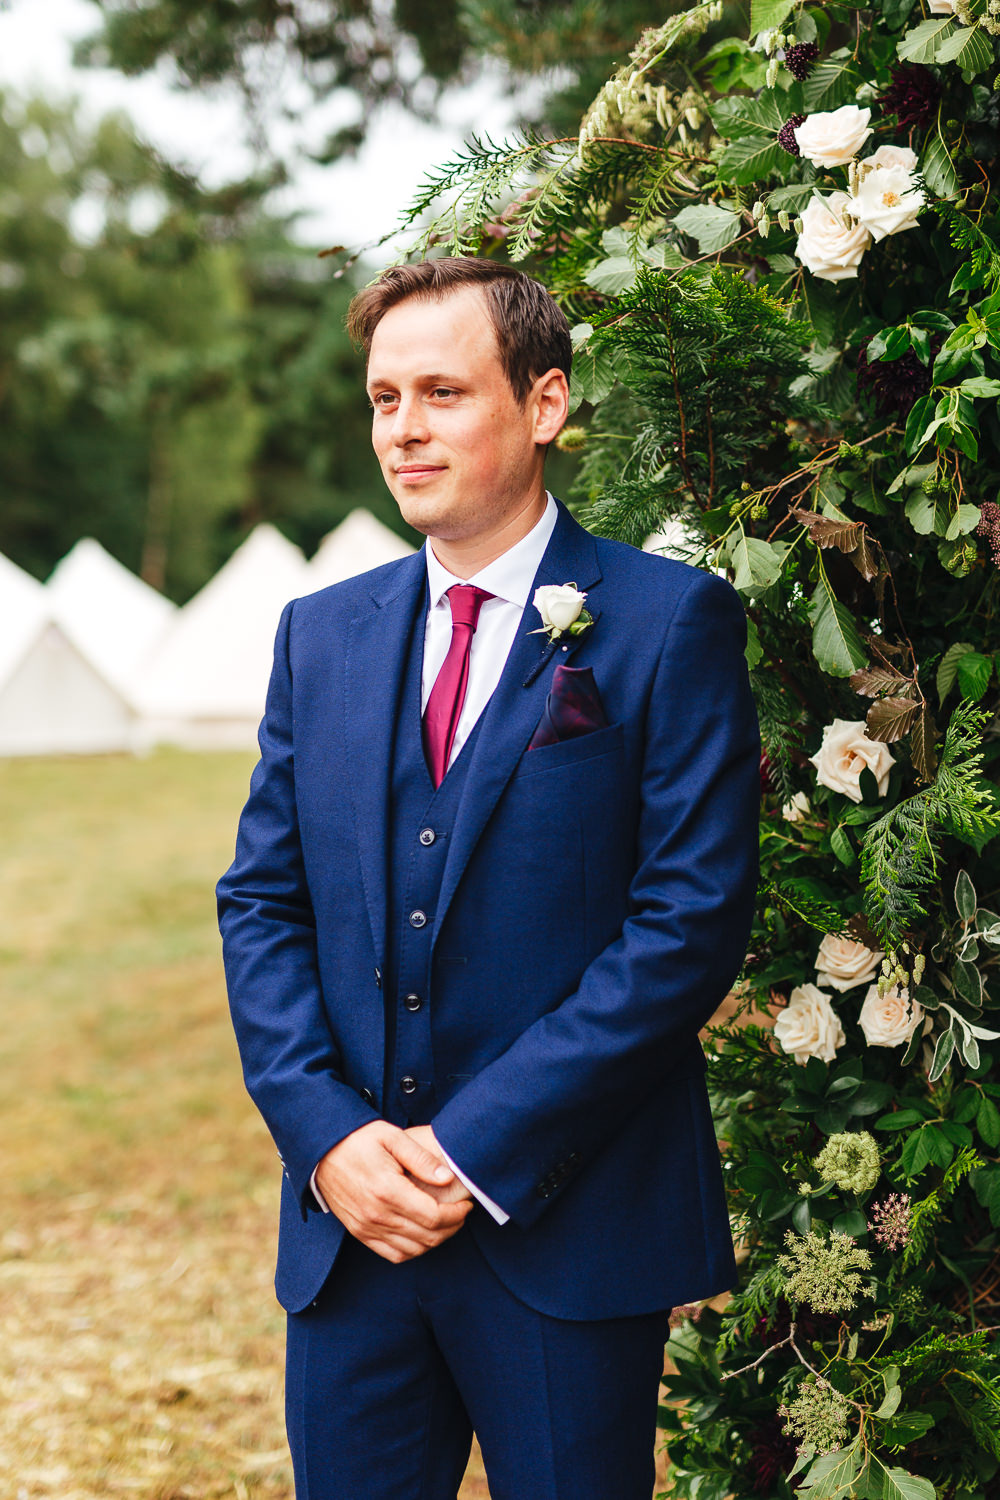 Groom Suit Blue Red Tie Festival Party Wedding Kirsty Mackenzie Photography